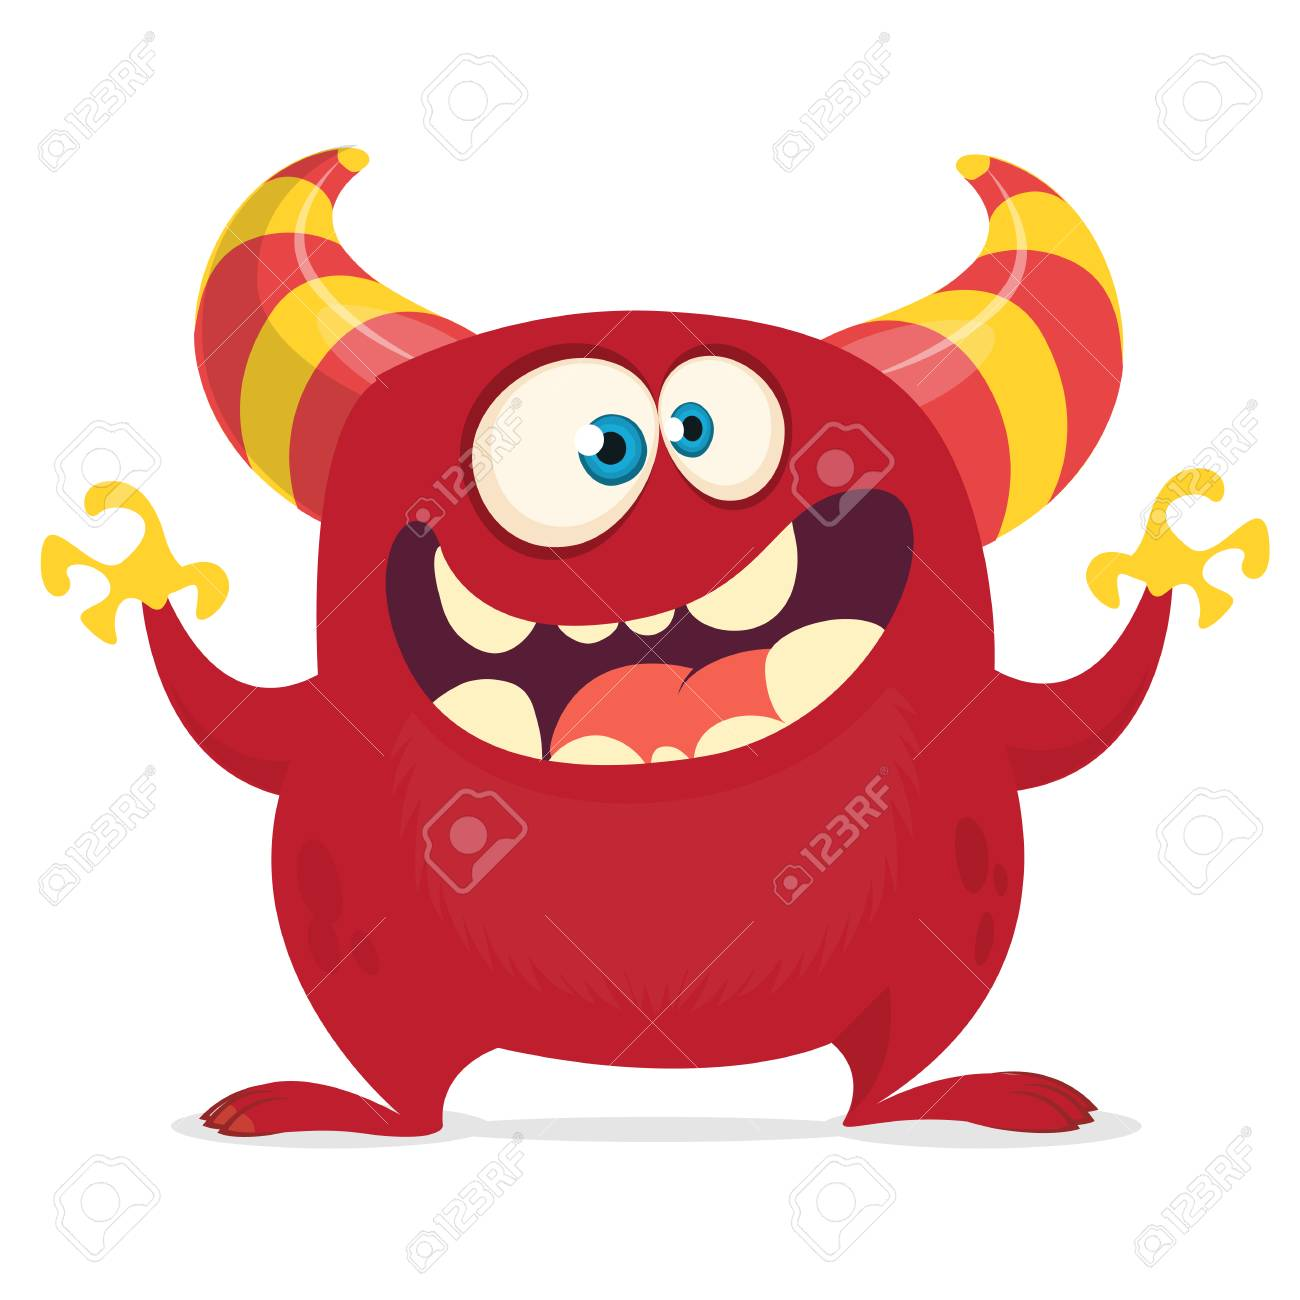 Cool Cartoon Monster With Horns And Big Mouth Vector Red Monster Royalty Free Cliparts Vectors And Stock Illustration Image 104064155